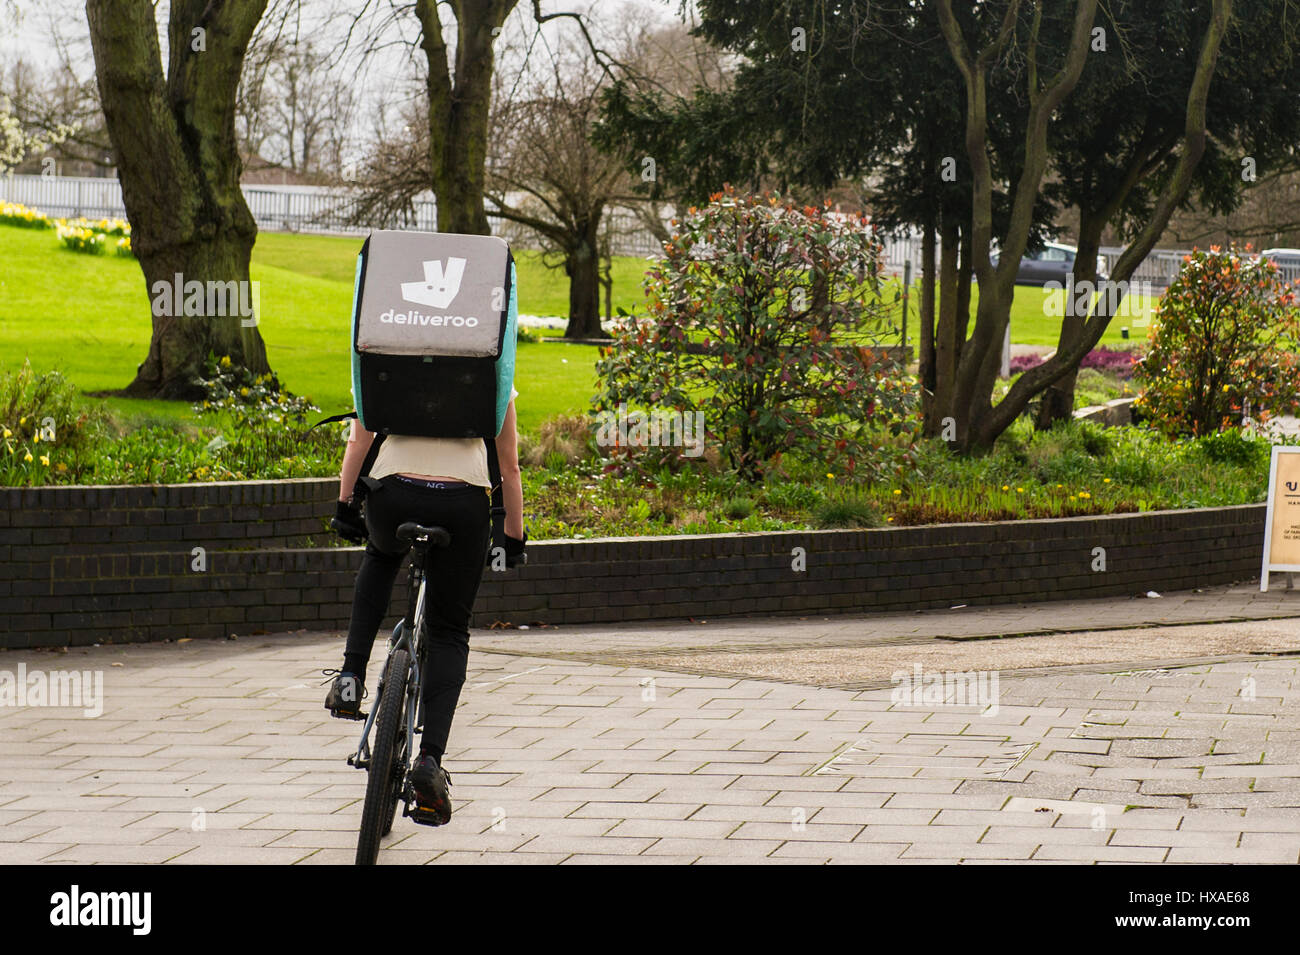 Deliveroo food delivery employee man riding a push bike with a food delivery box on his back. - Stock Image